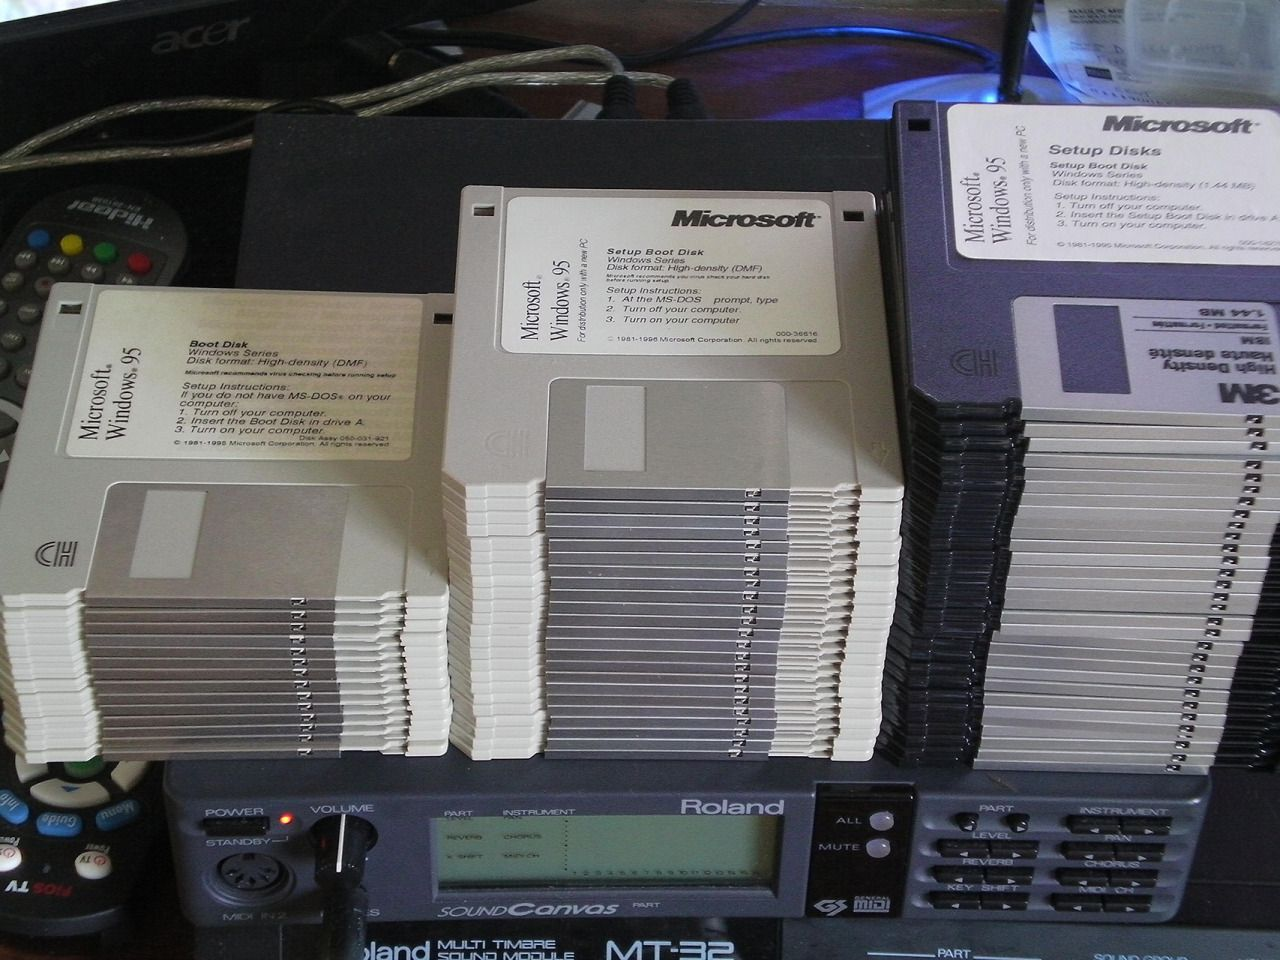 Pin by Jason Combs on e-phemera | Floppy disk, Windows 95, Phone